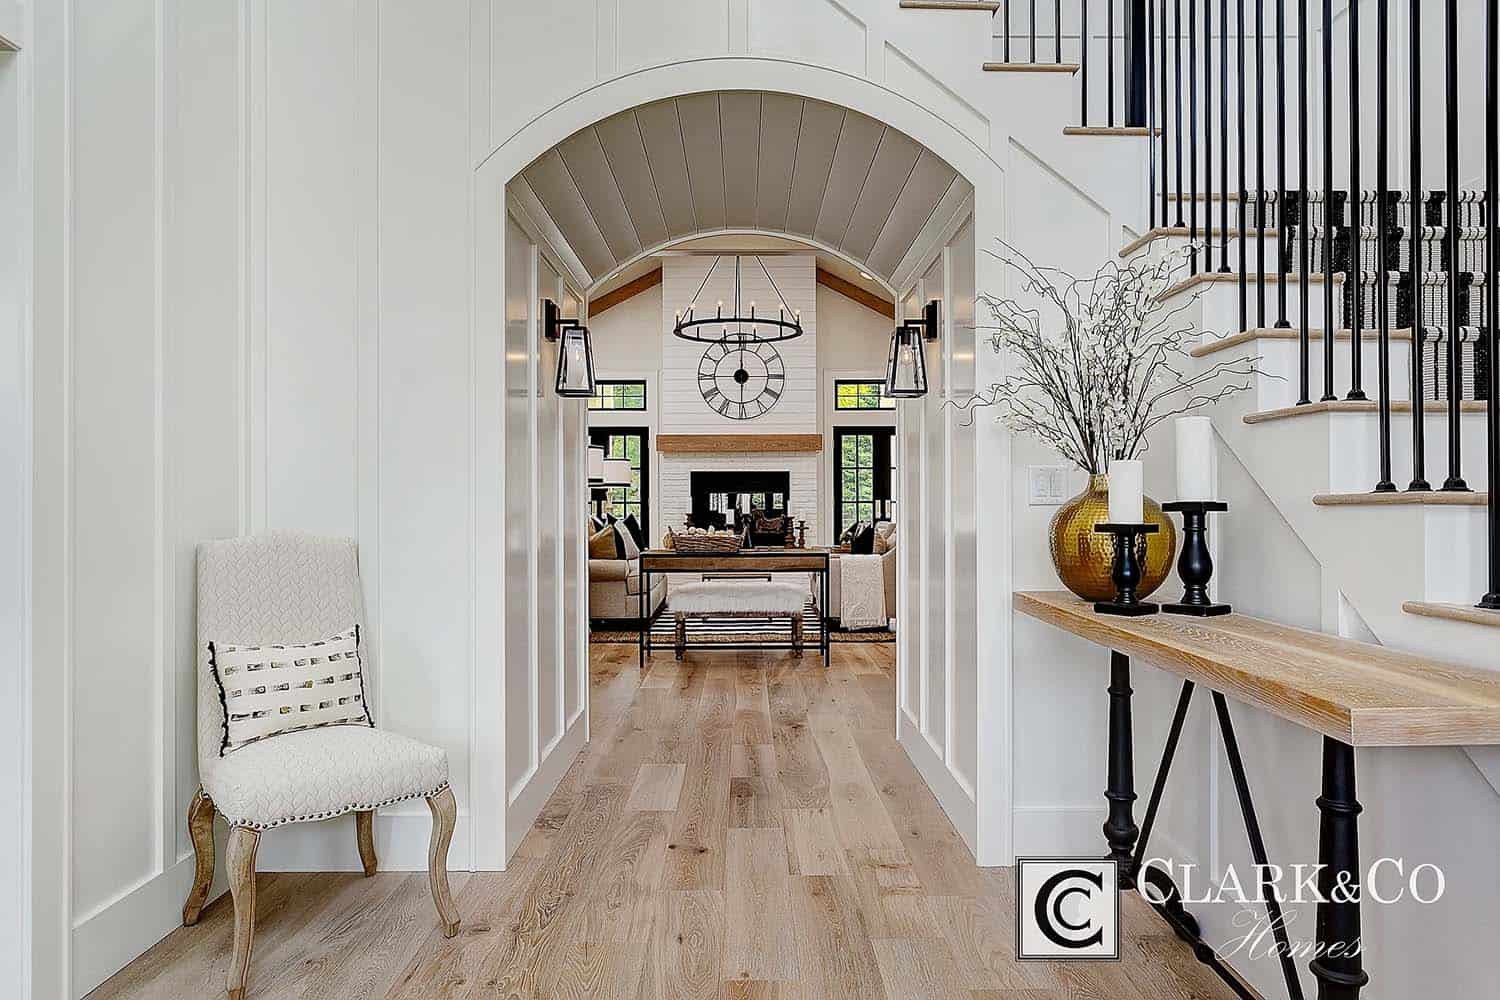 Modern Farmhouse Style-Clark and Co Homes-02-1 Kindesign